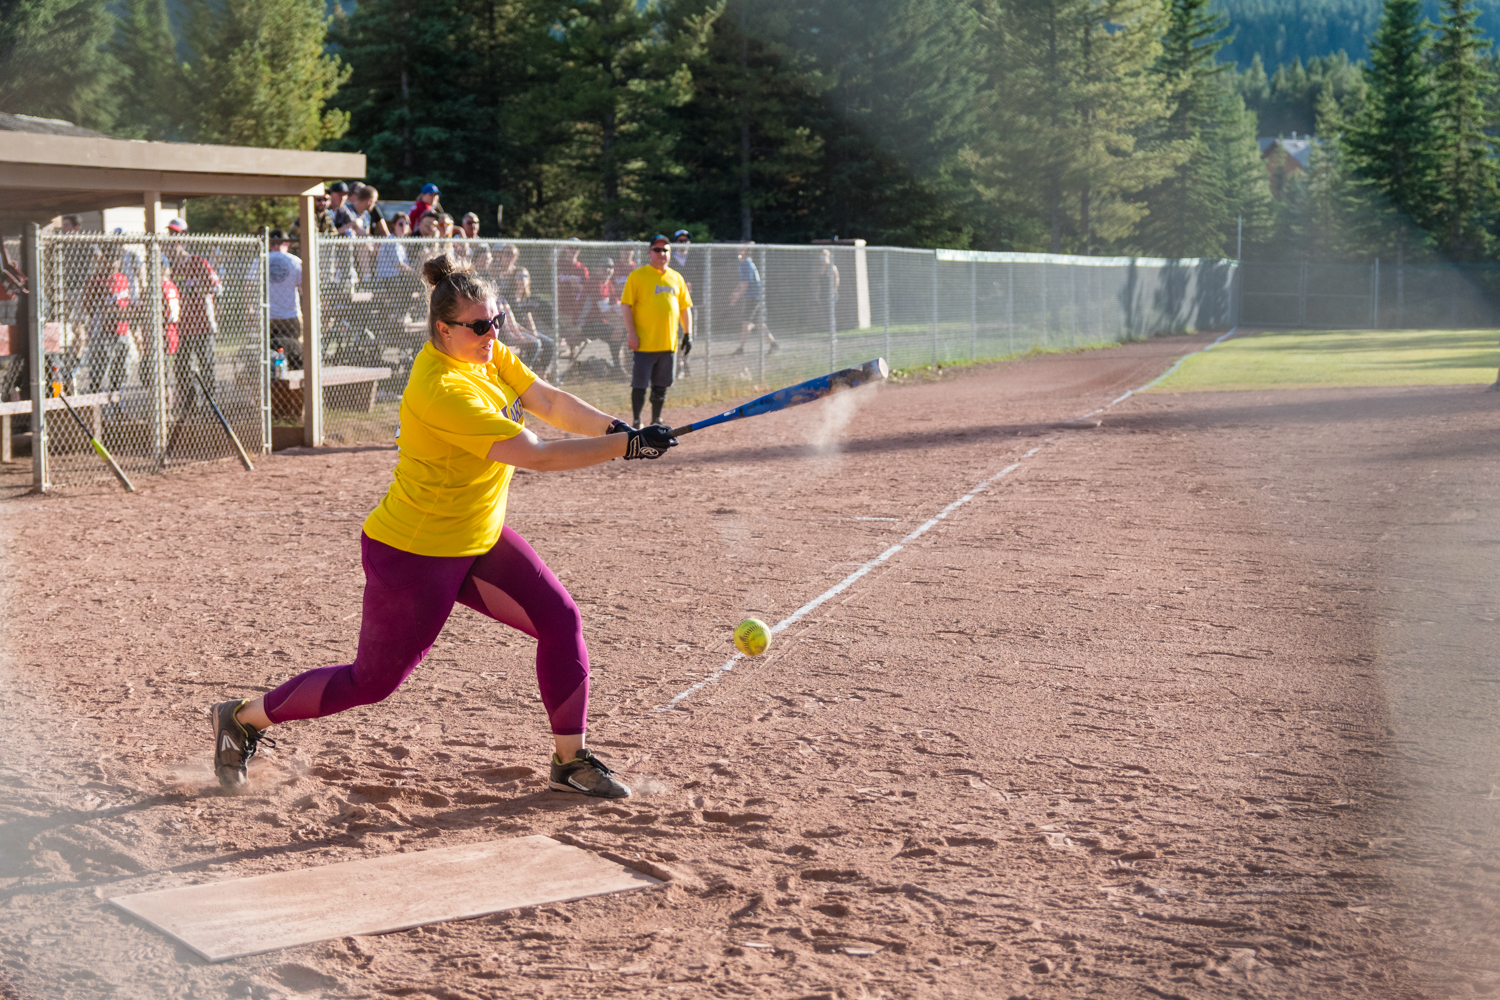 2017 08 22 Softball Playoffs 1-266.jpg